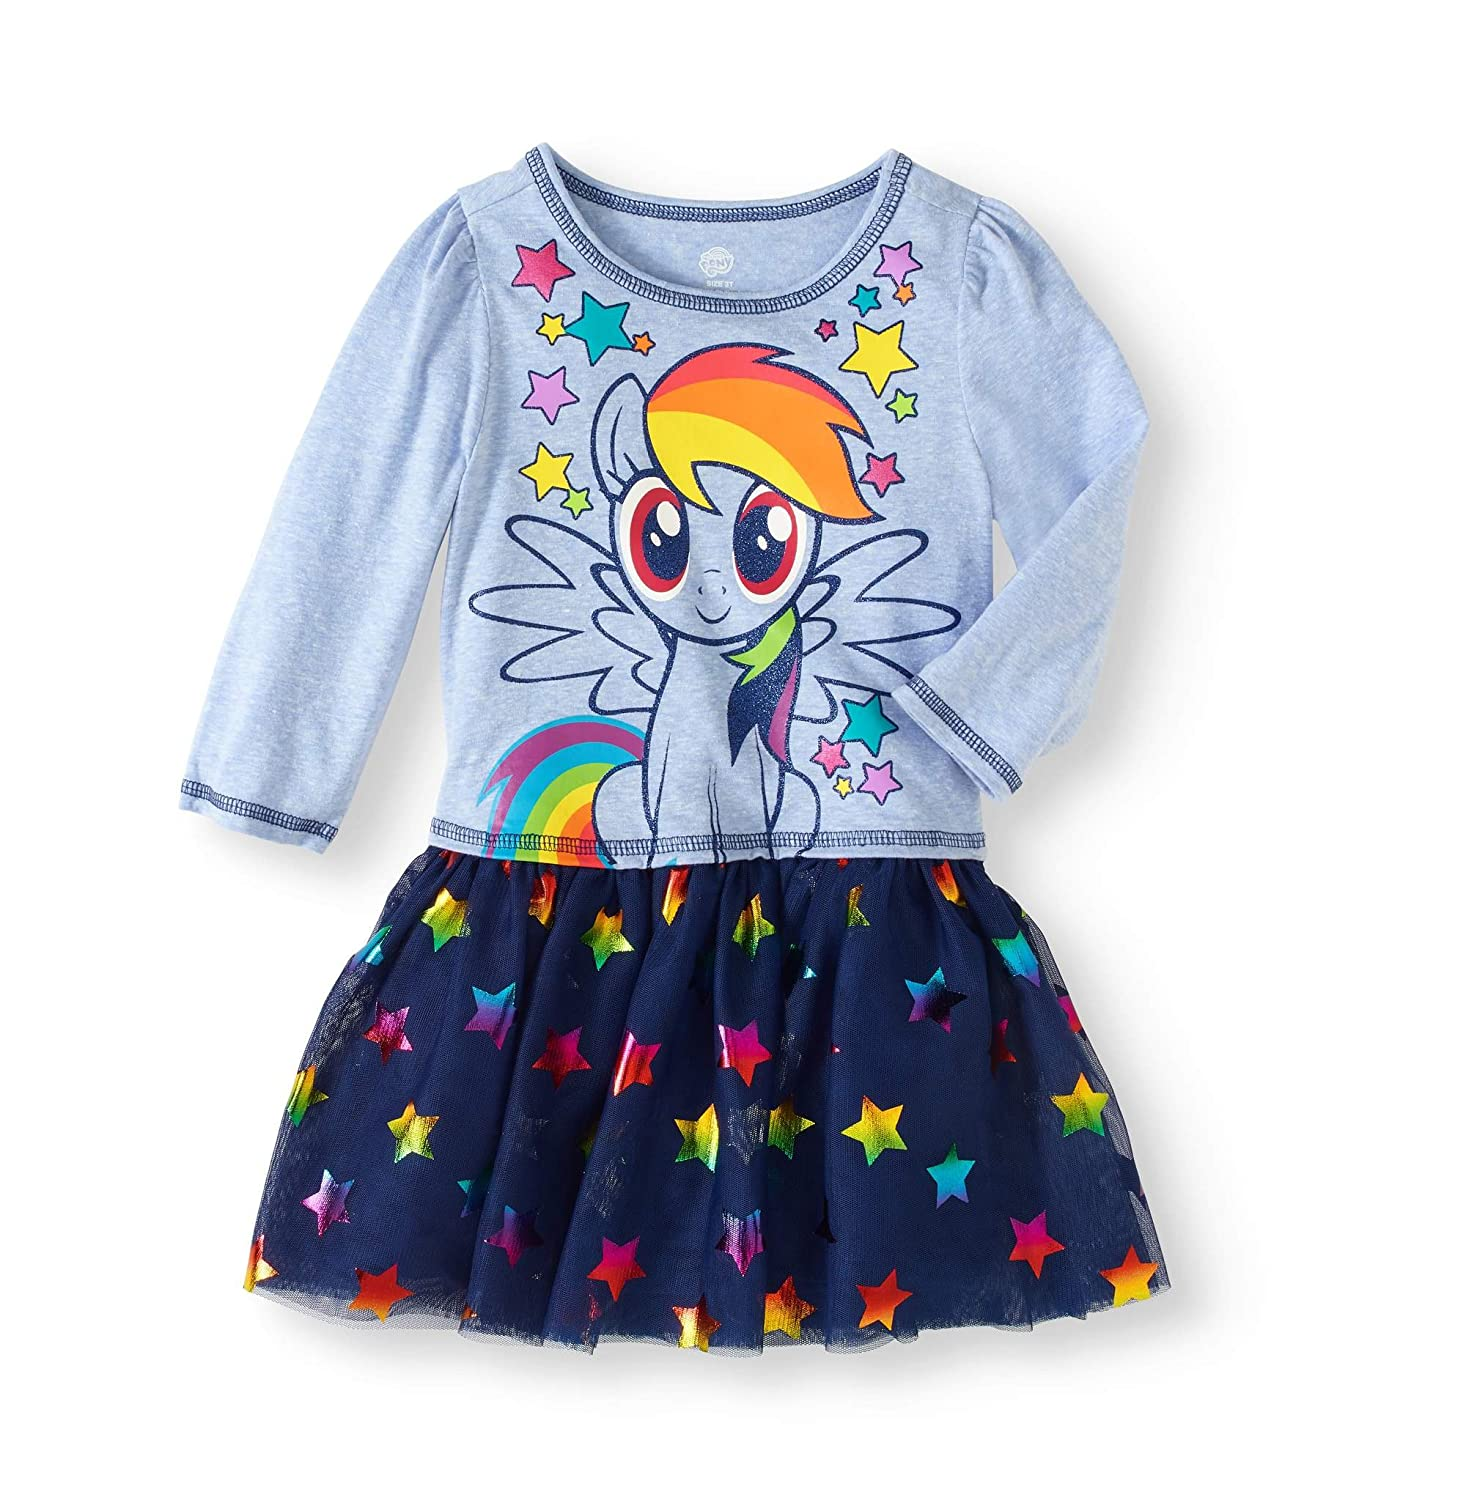 Toddler Girls My Little Pony I am Star Dress with Tutu Skirt (2T)